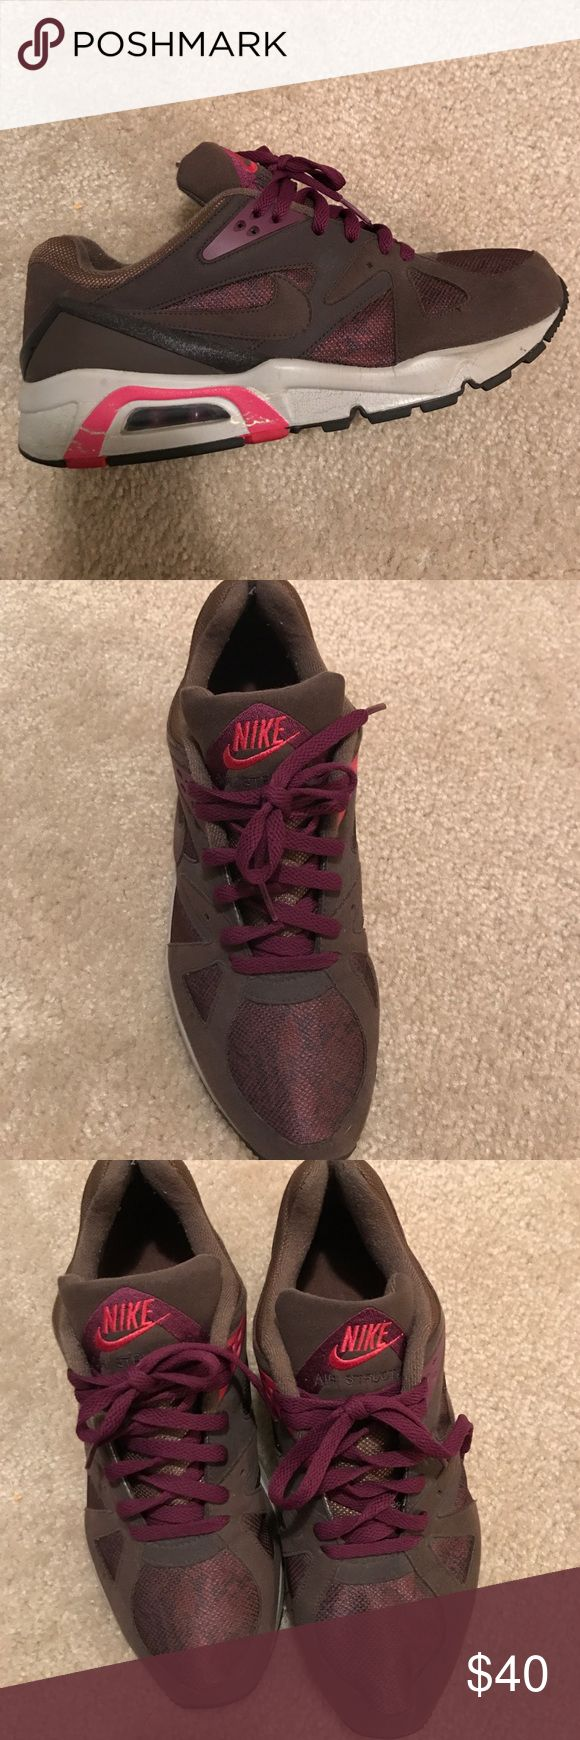 Nike Air Structure Men's size 10 Nike Air Structure. Small crease on sole next to air bubble Nike Shoes Sneakers